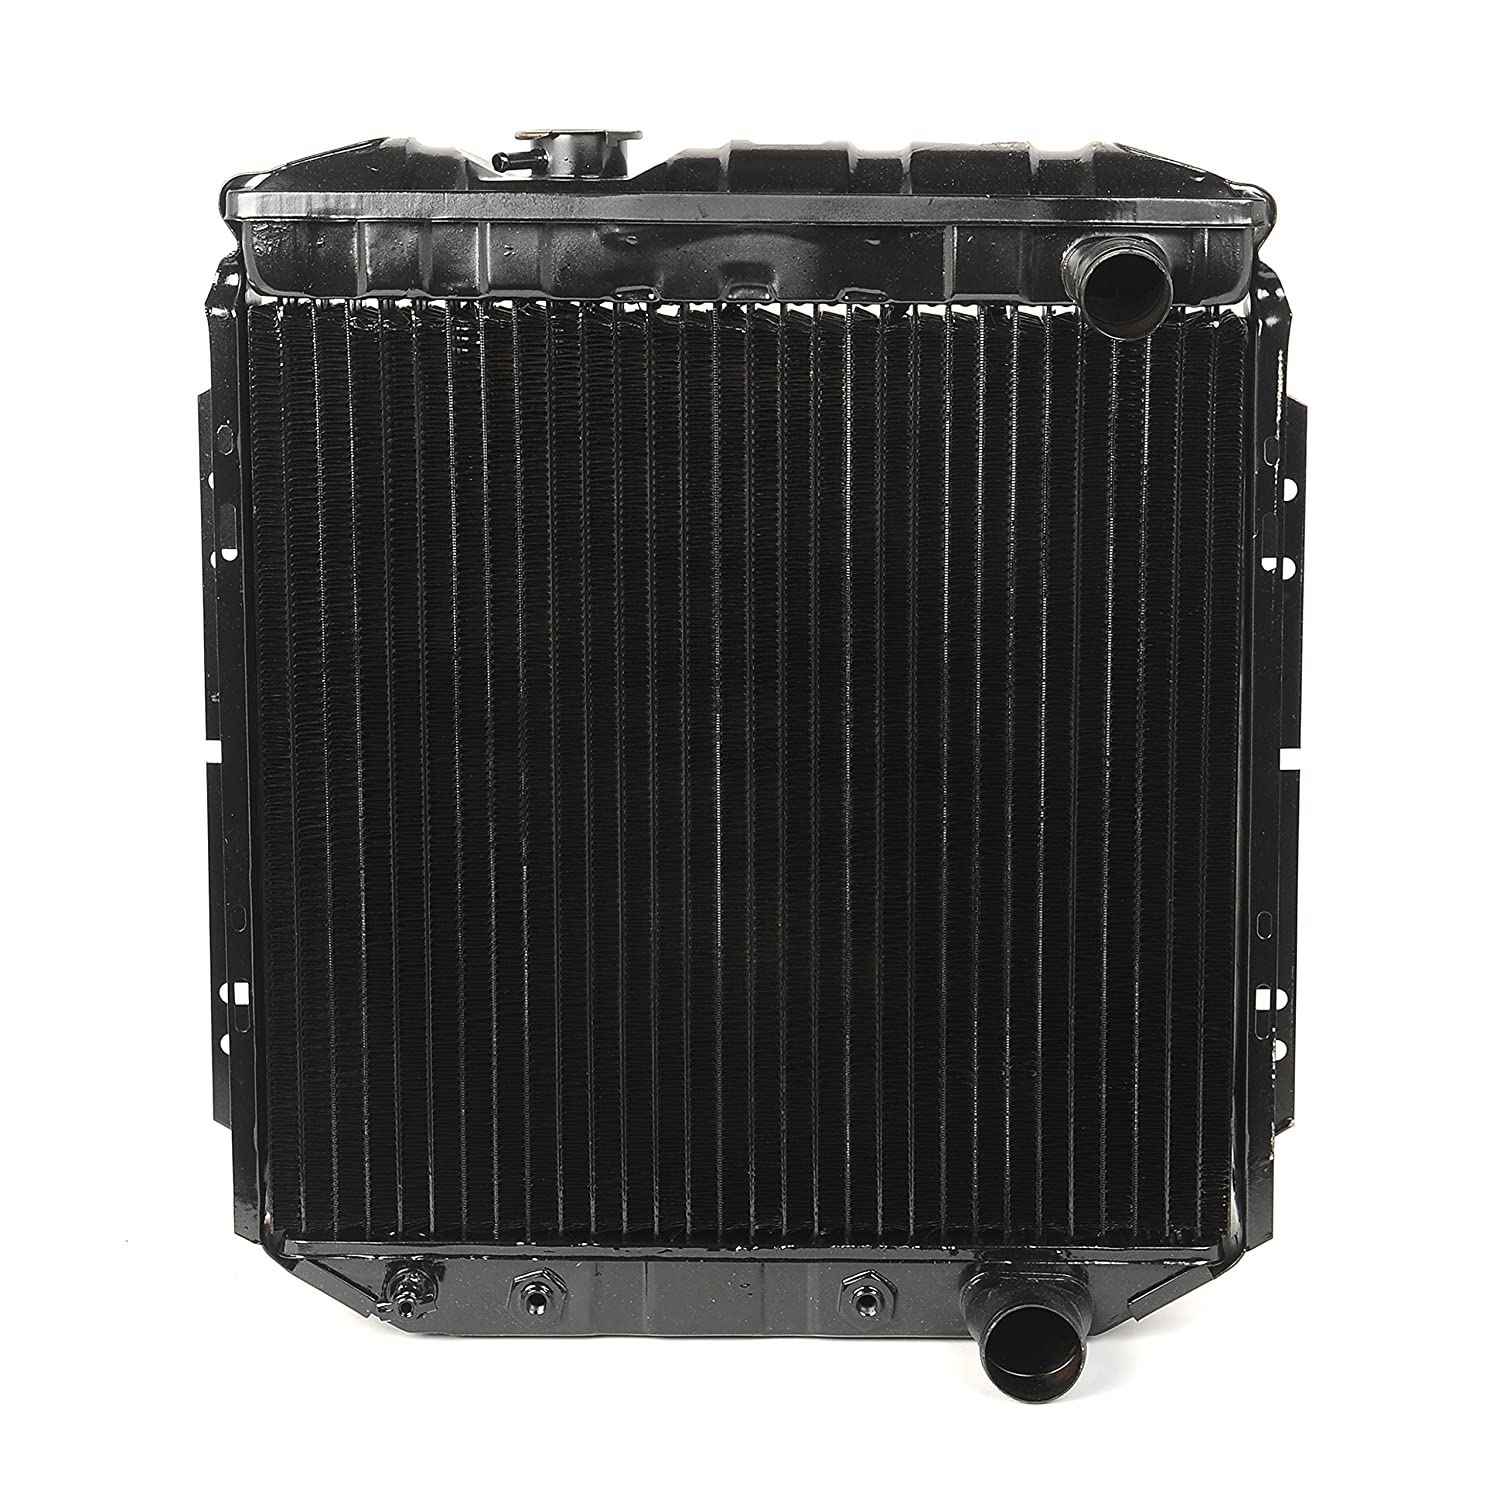 Amazon.com: 1965-1966 Ford Mustang V8 260-289 Radiator 3 Row Large Tube O/e Style NEW: Automotive